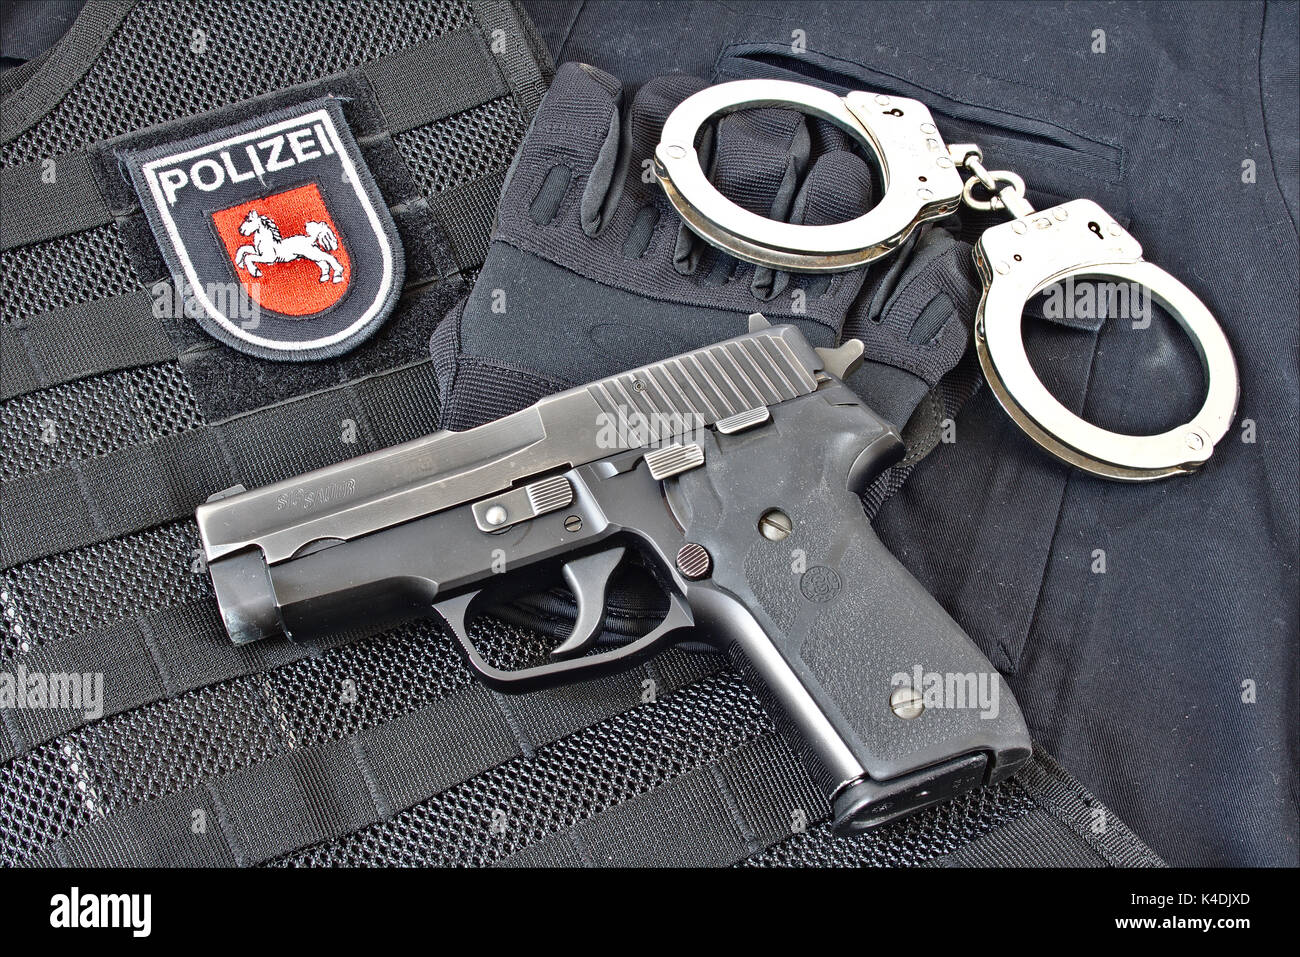 Handgun with handcuff, gloves on blue uniform shirt and tactical vest with patch of Niedersachsen State Police, Germany - Stock Image